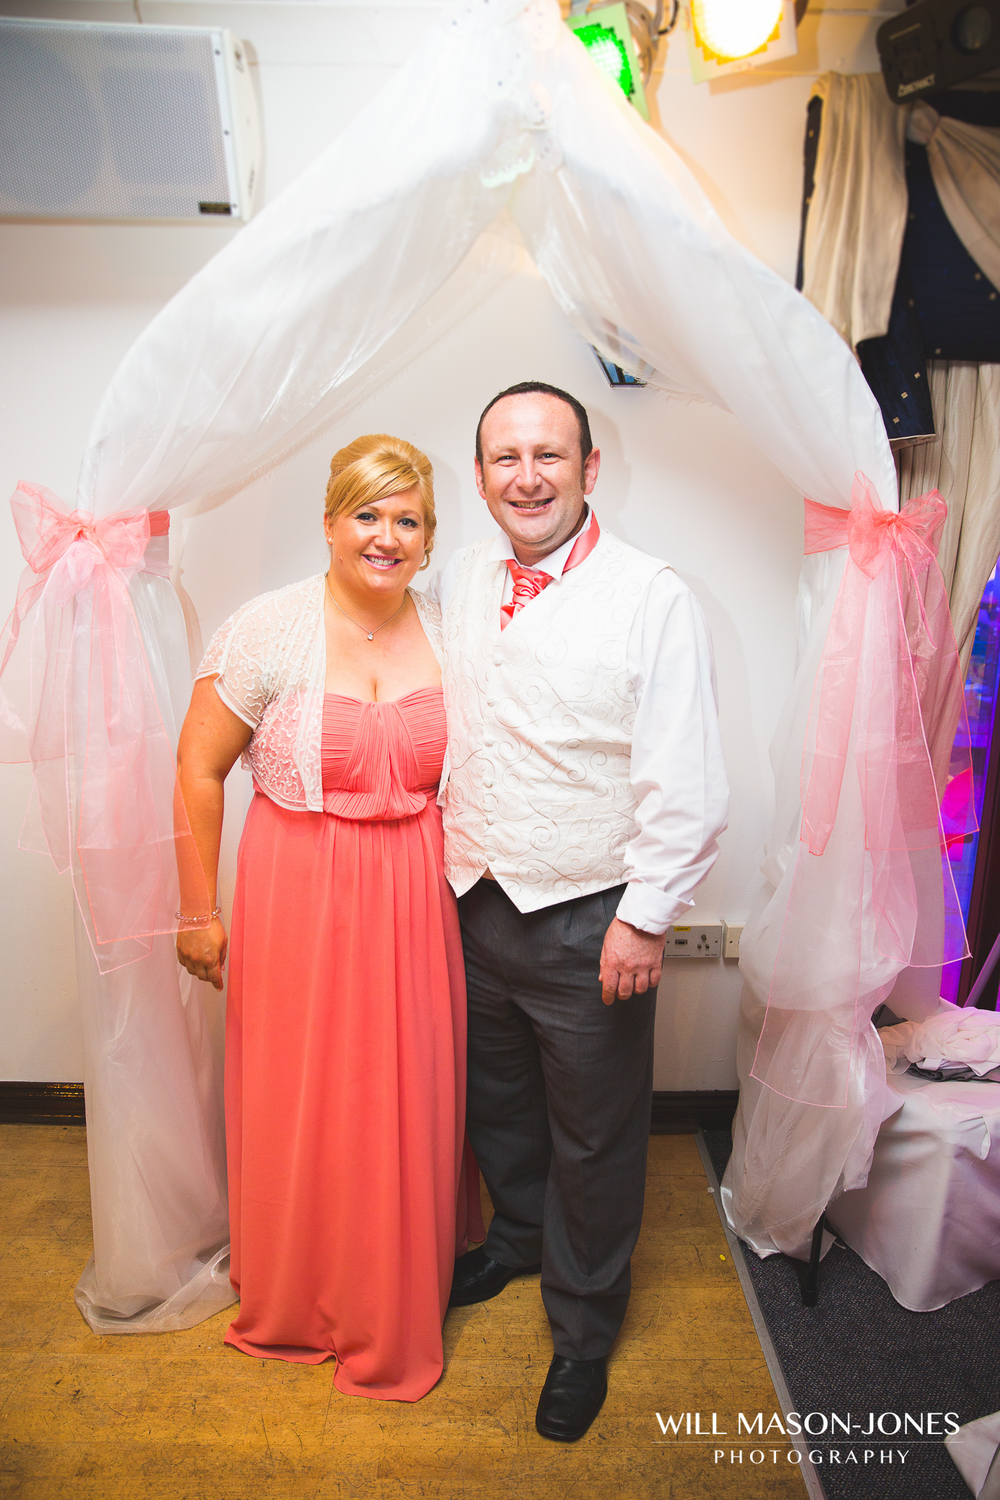 aberavonwedding-553.jpg